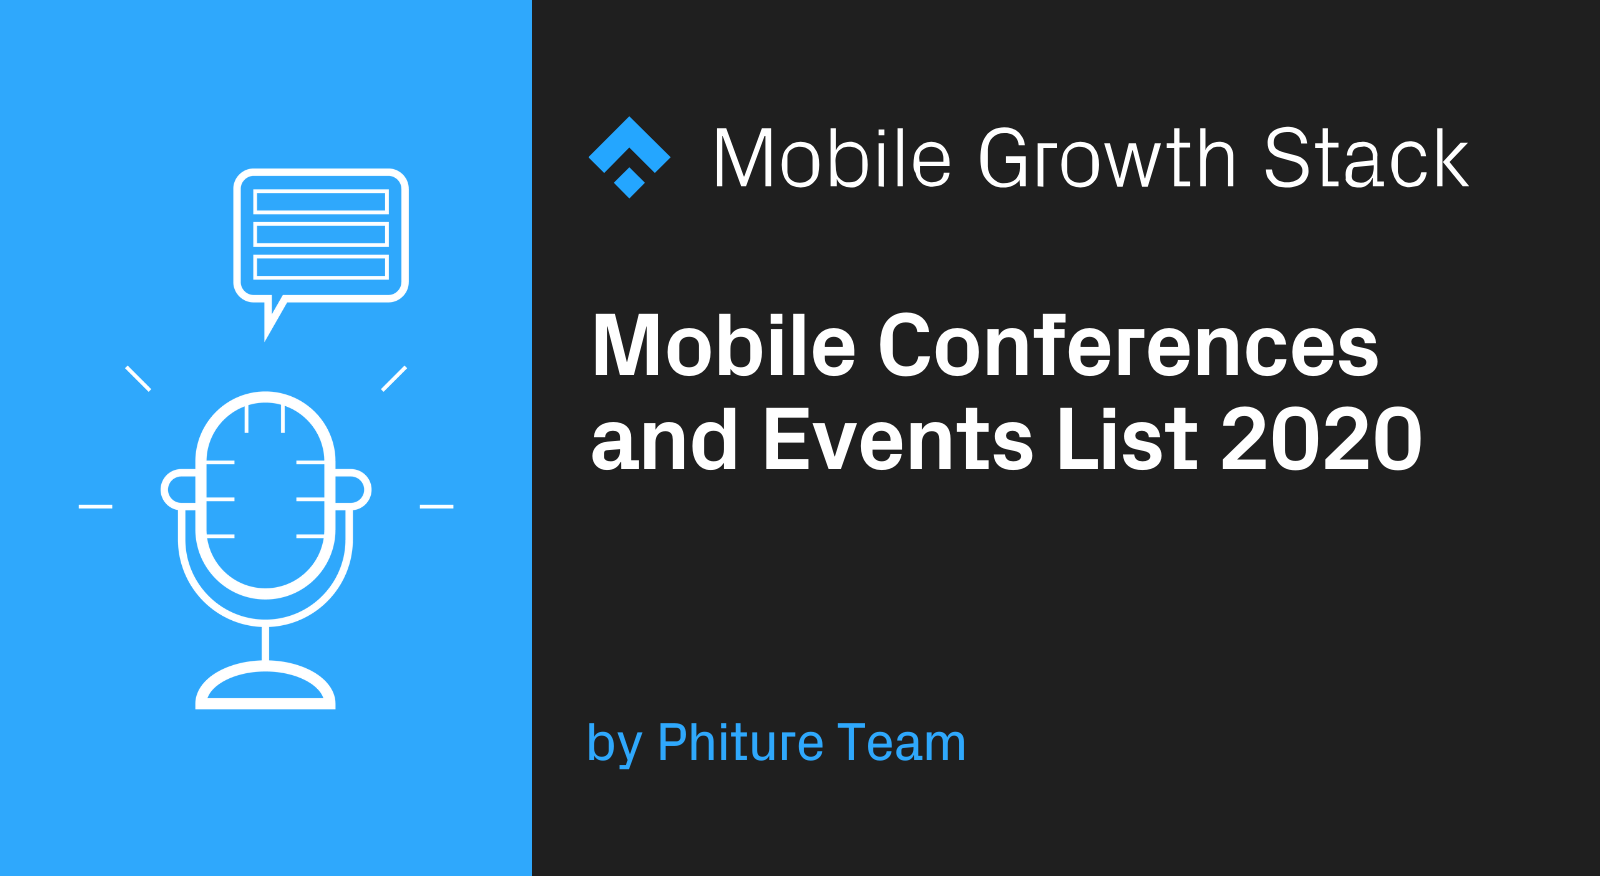 Top Events Of 2020.Mobile Conferences And Events List 2020 The Mobile Growth